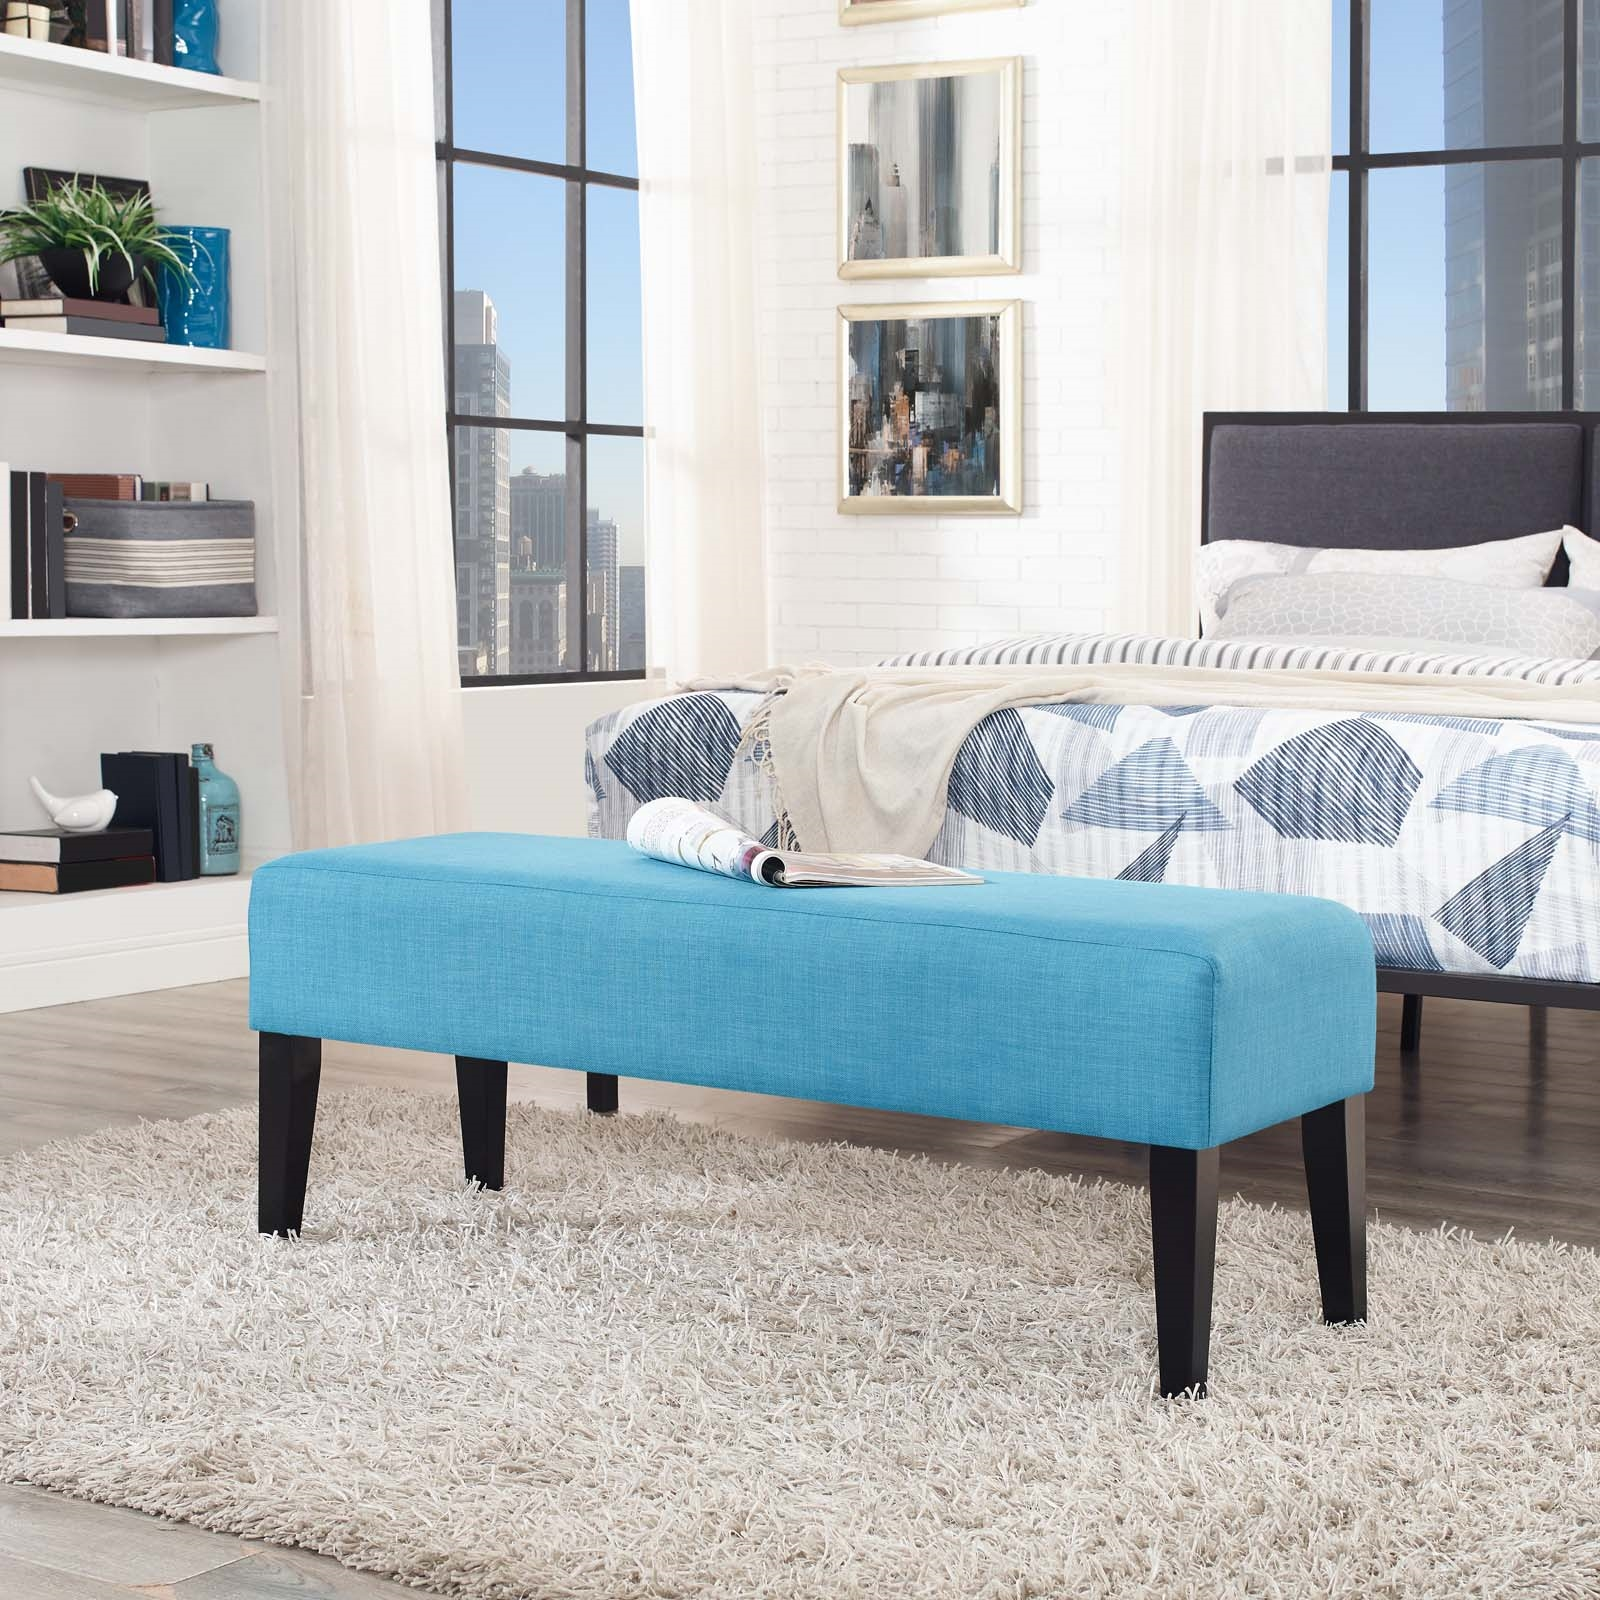 Connect Upholstered Fabric Bench in Pure Water